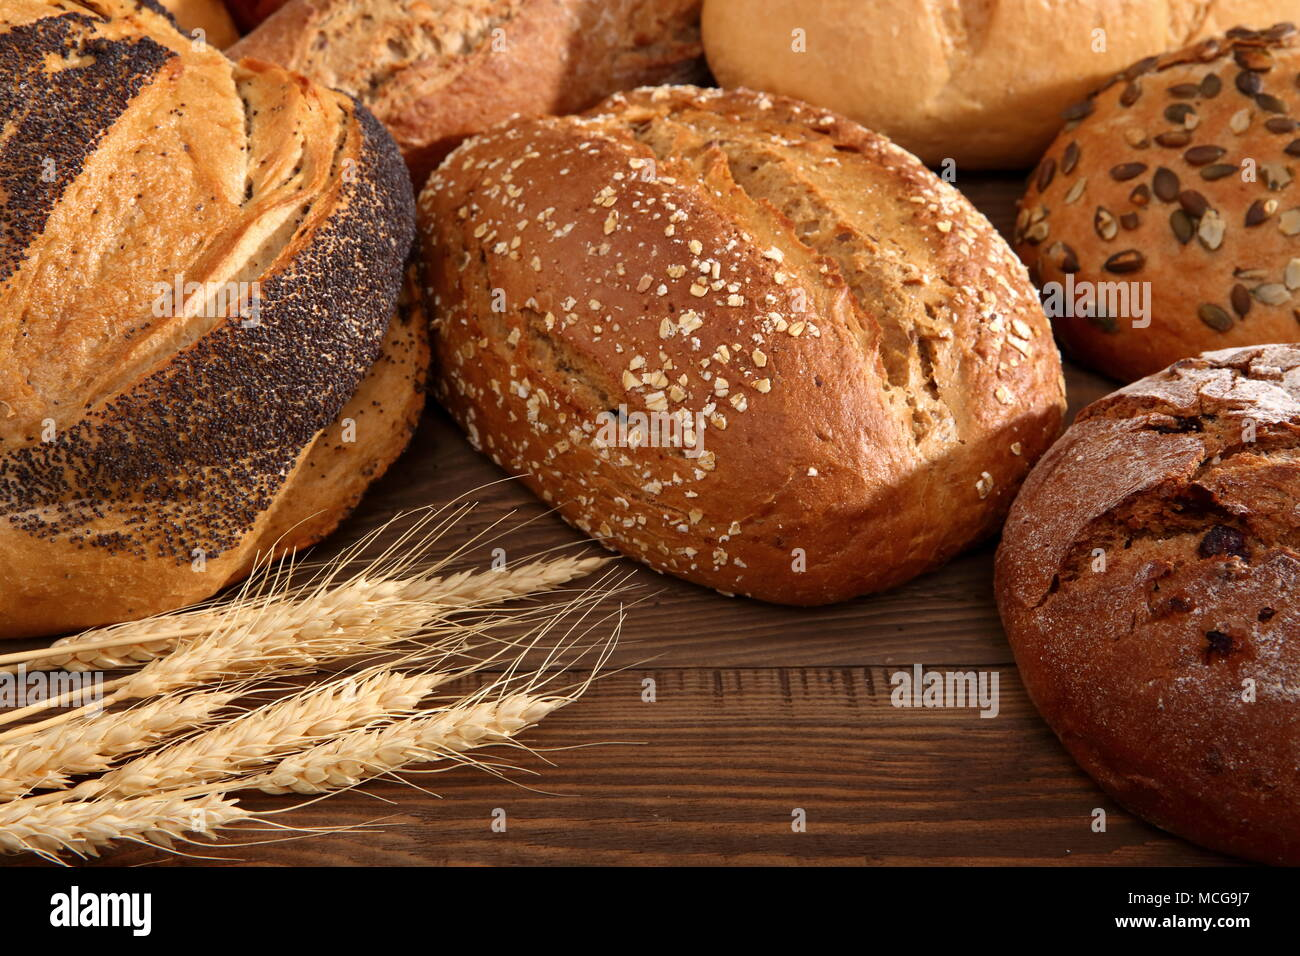 Bread and rolls in present times occur in many types and shapes not only in Poland but also around the world. Stock Photo